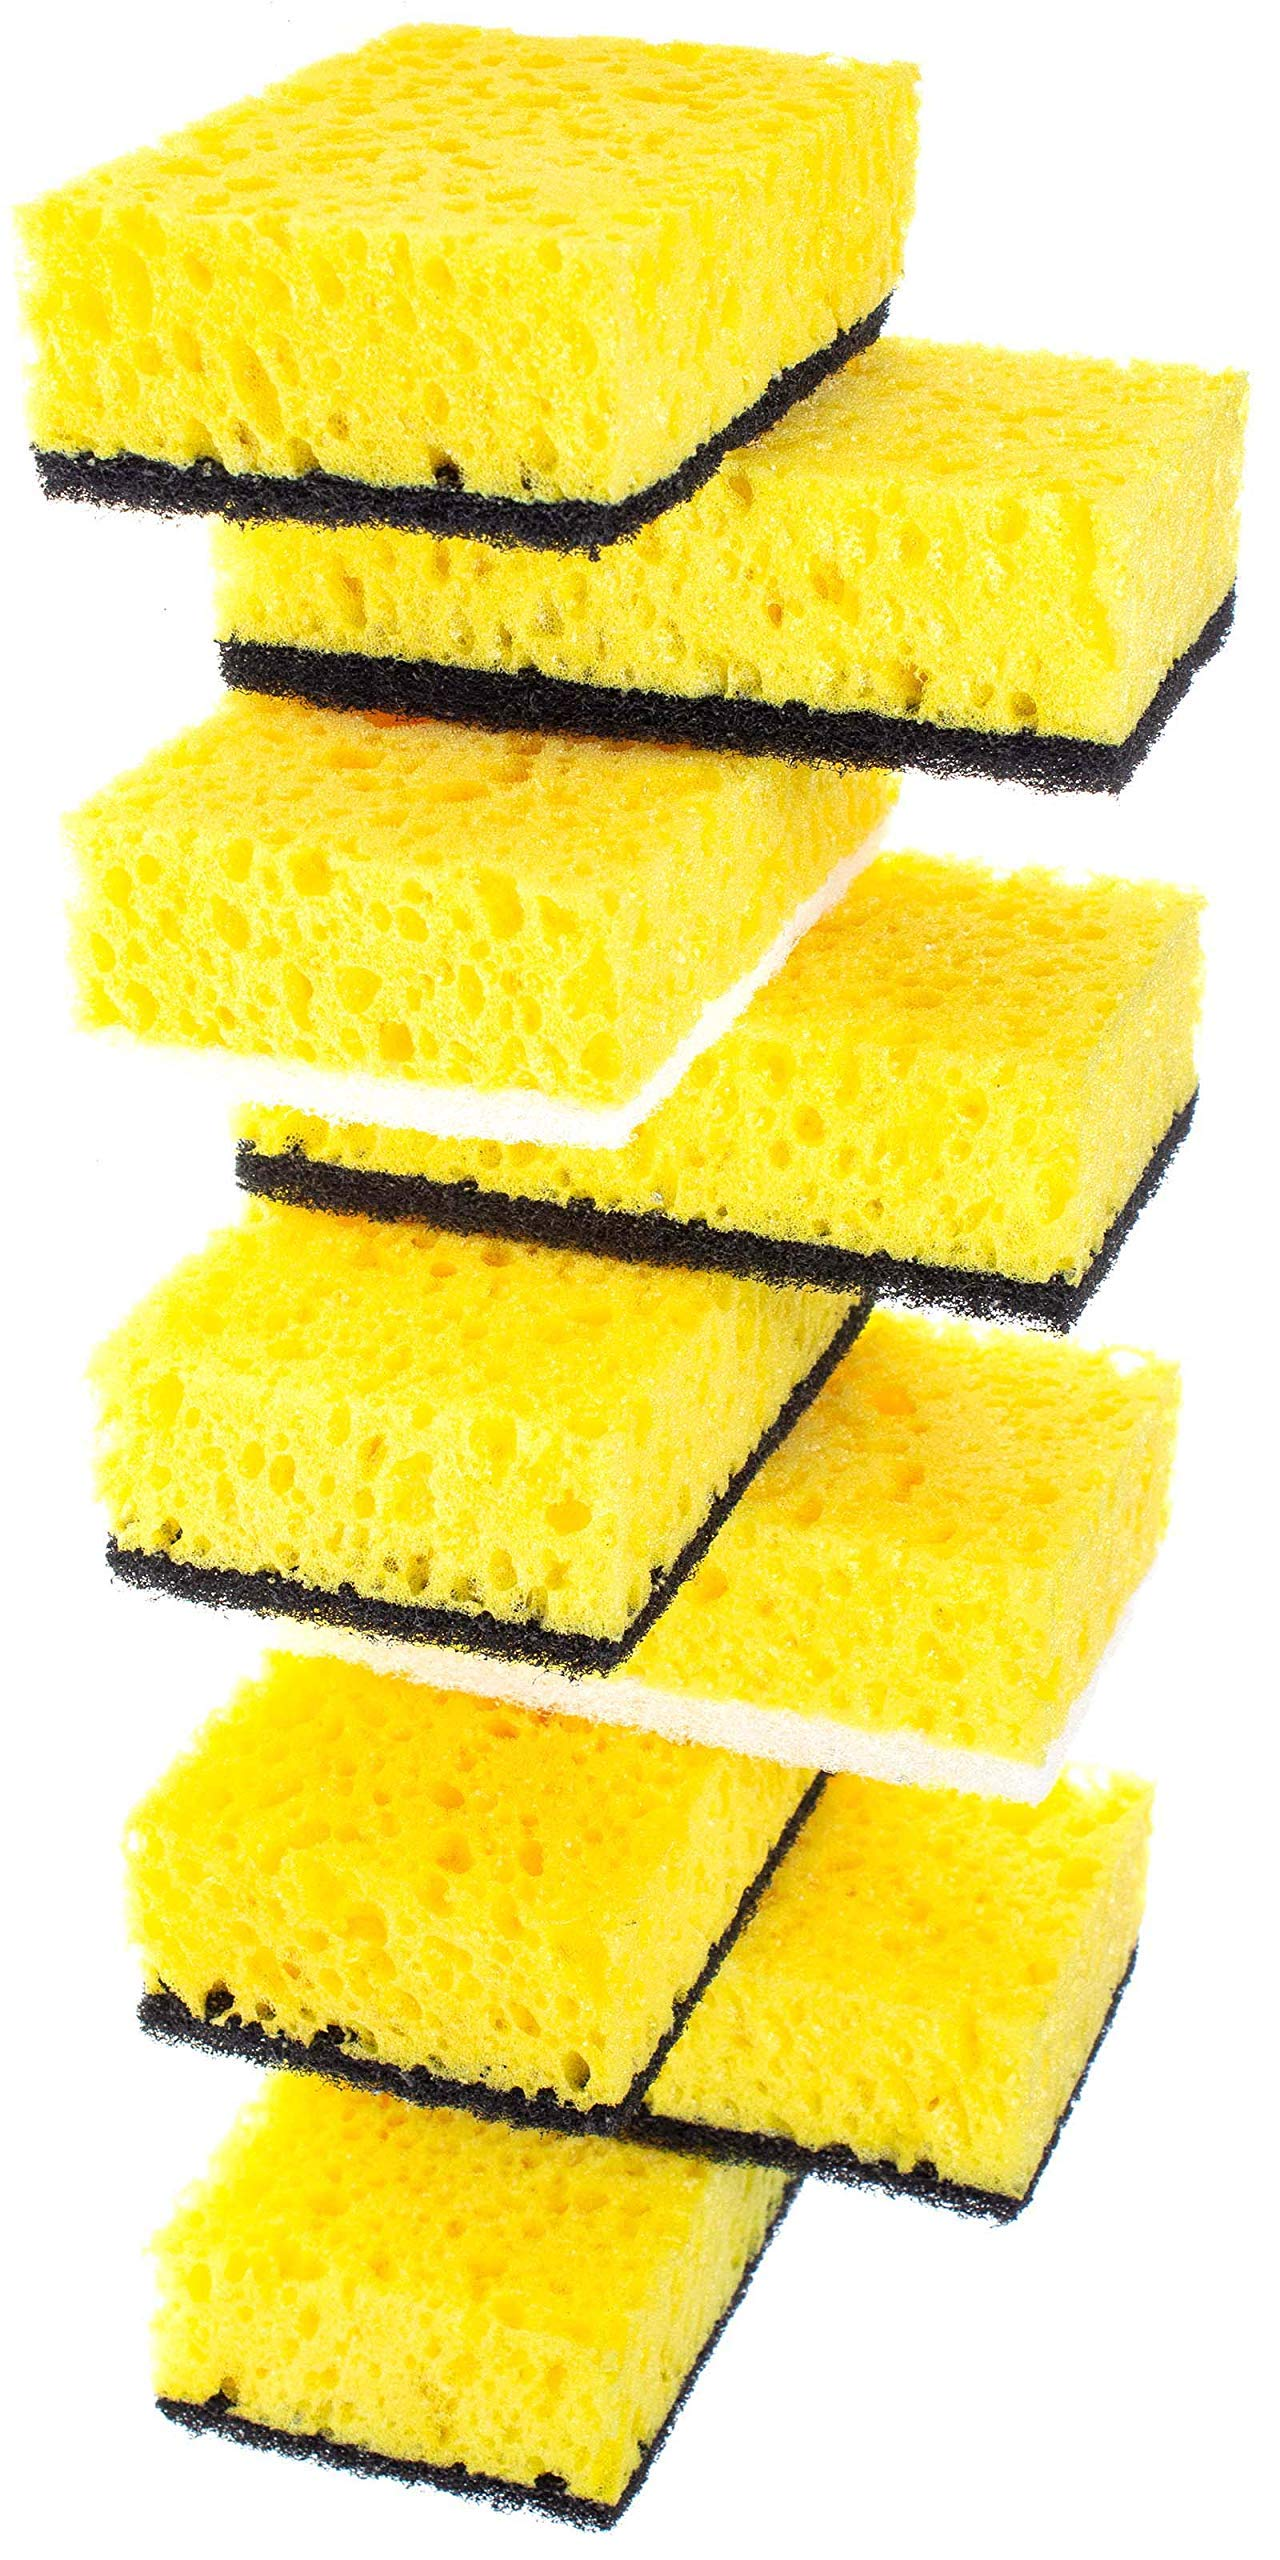 Okleen Yellow Multi Use Scrub Sponge. Made in Europe. 9 Pack, 4.3x2.8x1.4 inches. Odorless Heavy Duty and Non Scratch Fiber. Durable and Delicate Scrubber for Hard Dirty Surfaces in Daily Cleaning